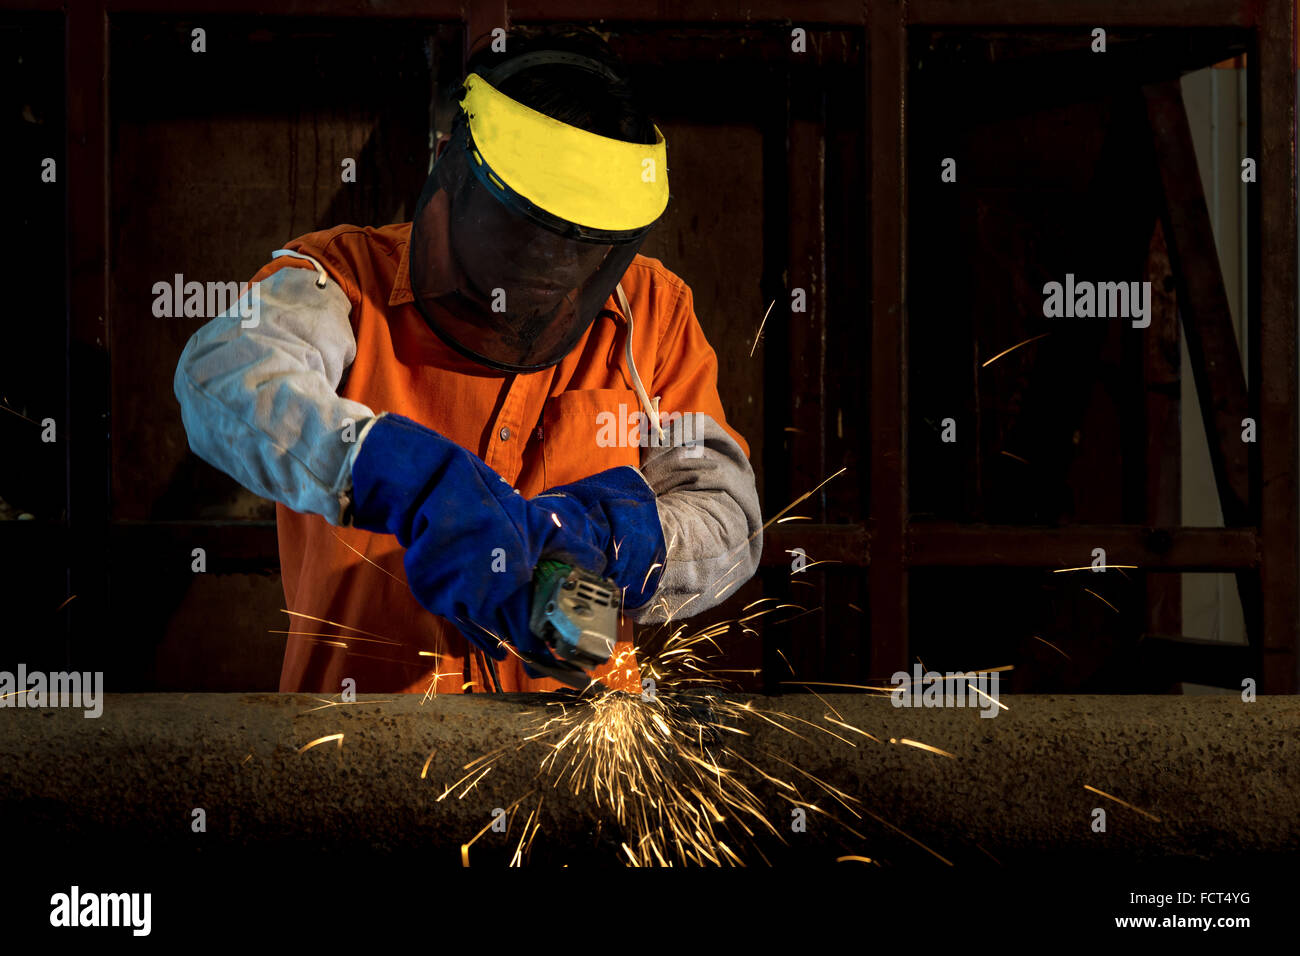 Industrial worker cutting and welding metal with many sharp sparks Stock Photo